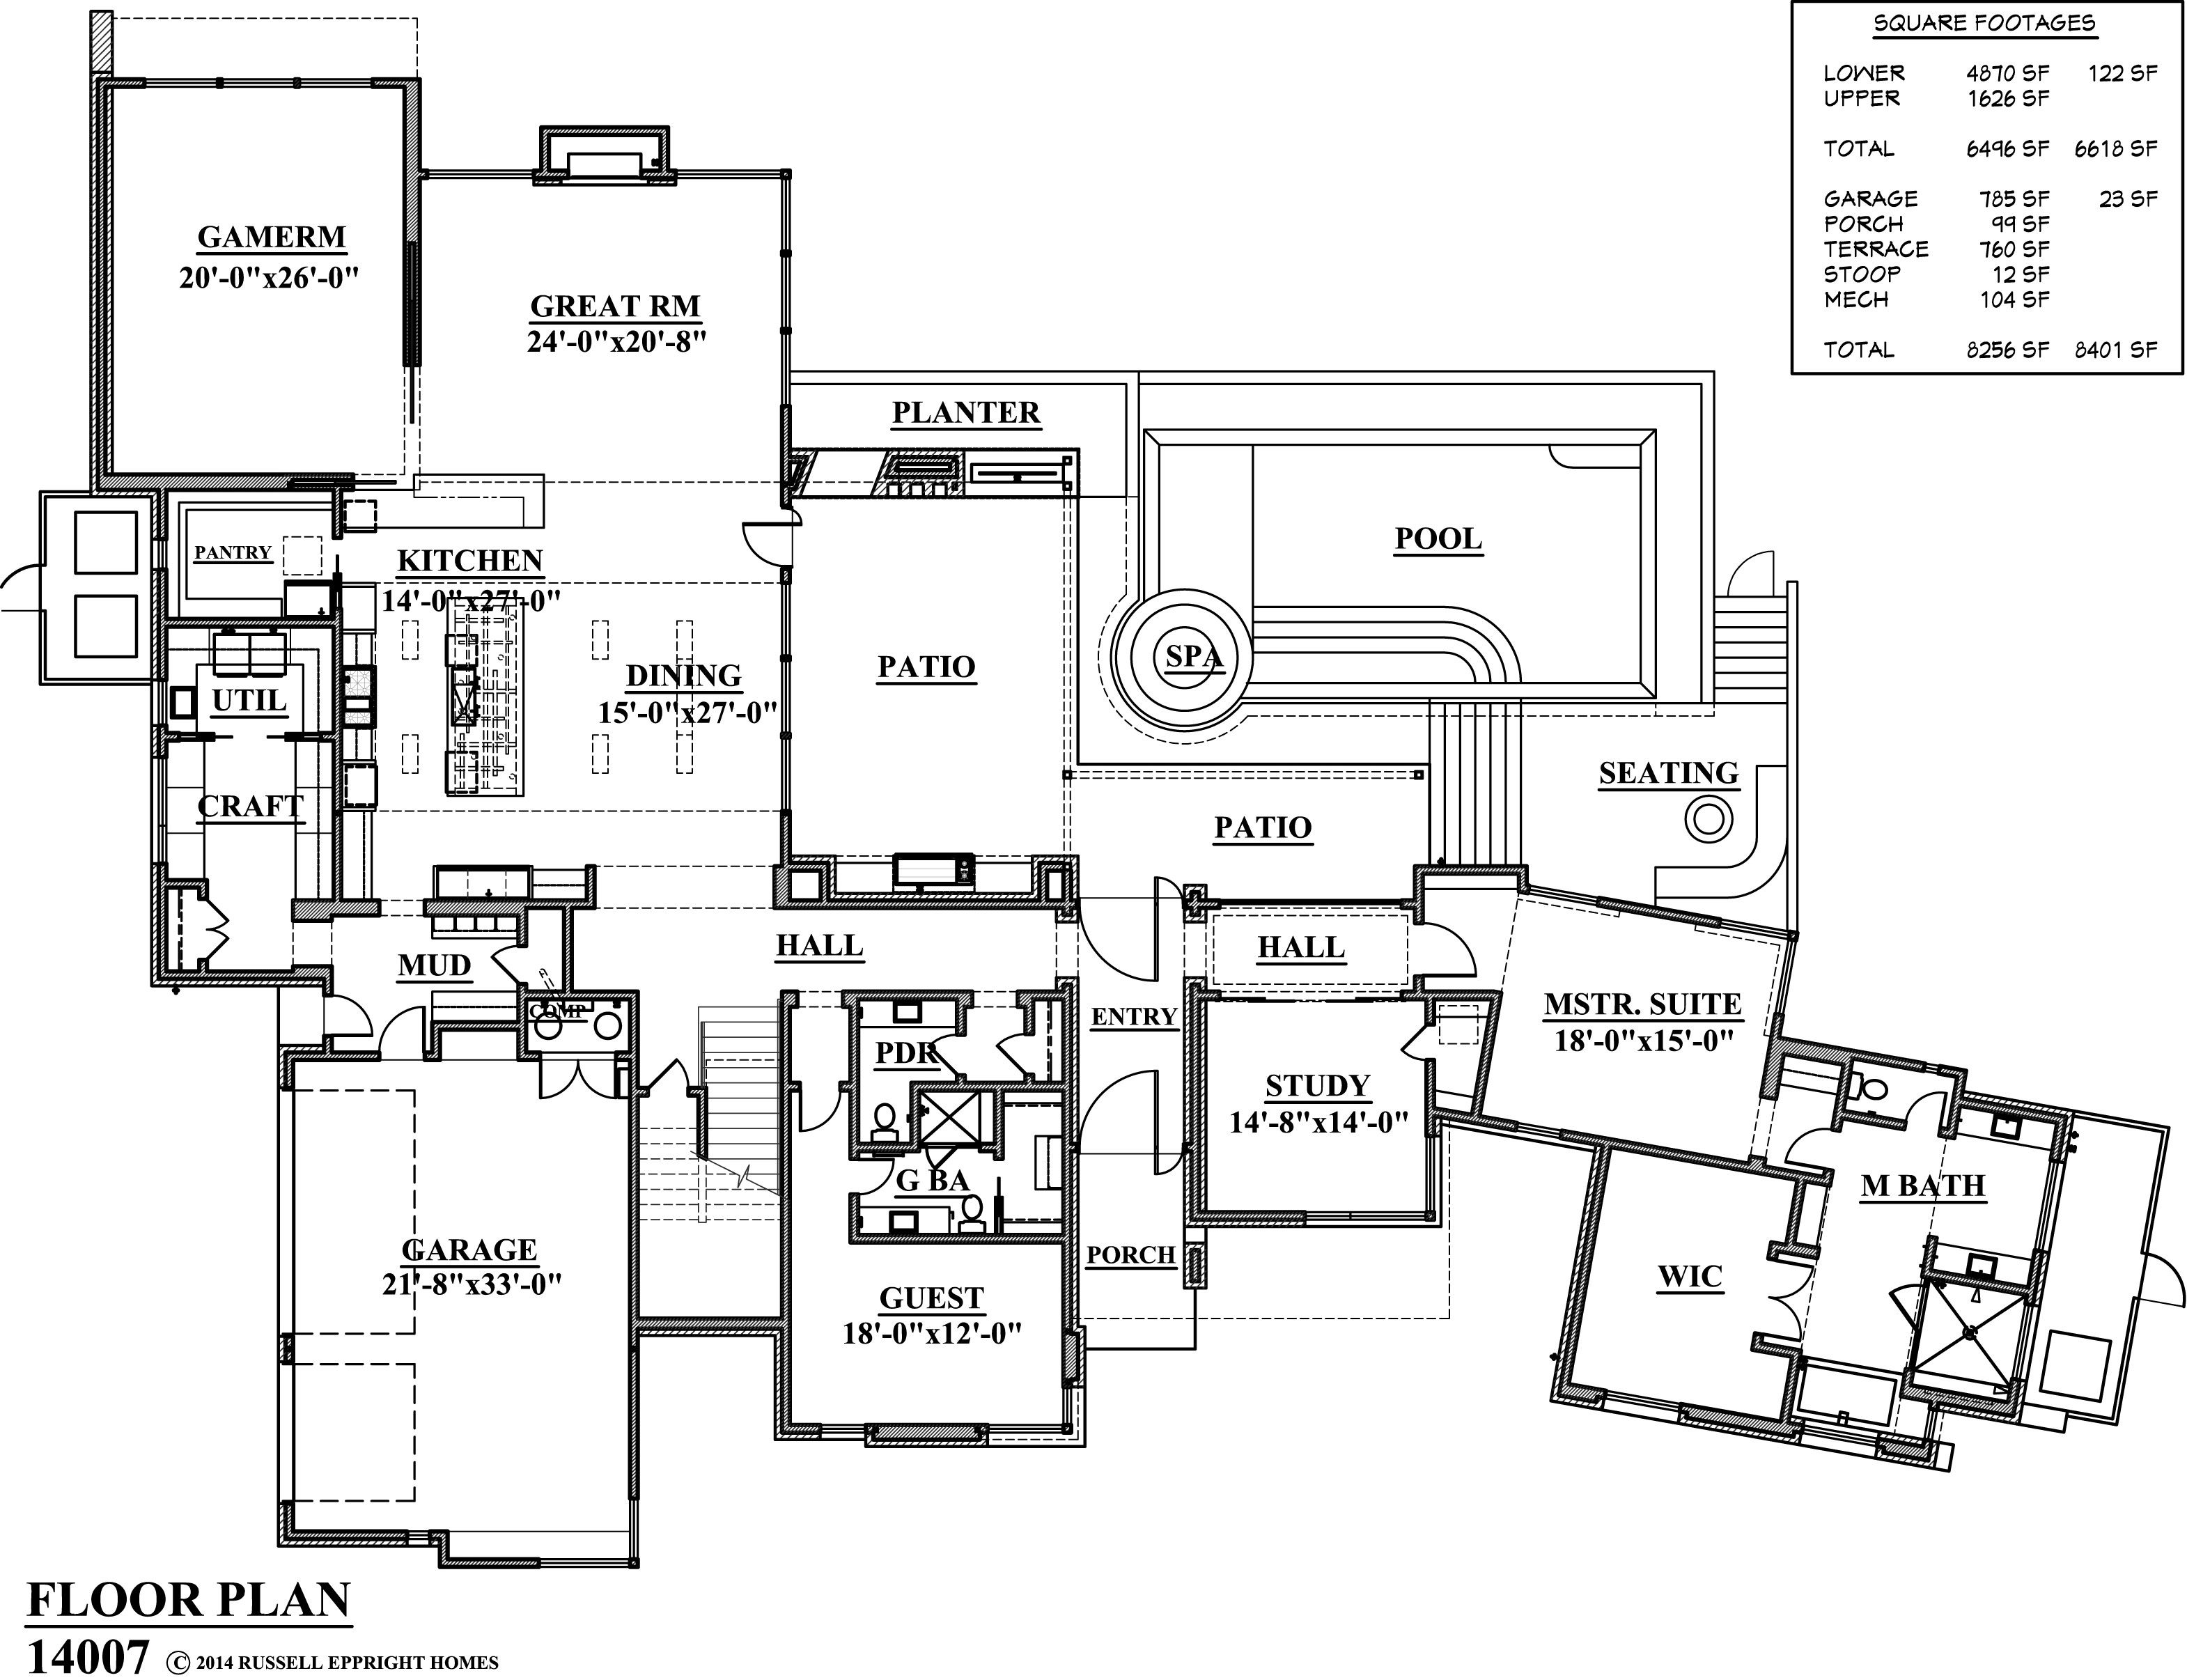 Cornerstone arch plan bob wetmore architect floor plan for Cornerstone house plans